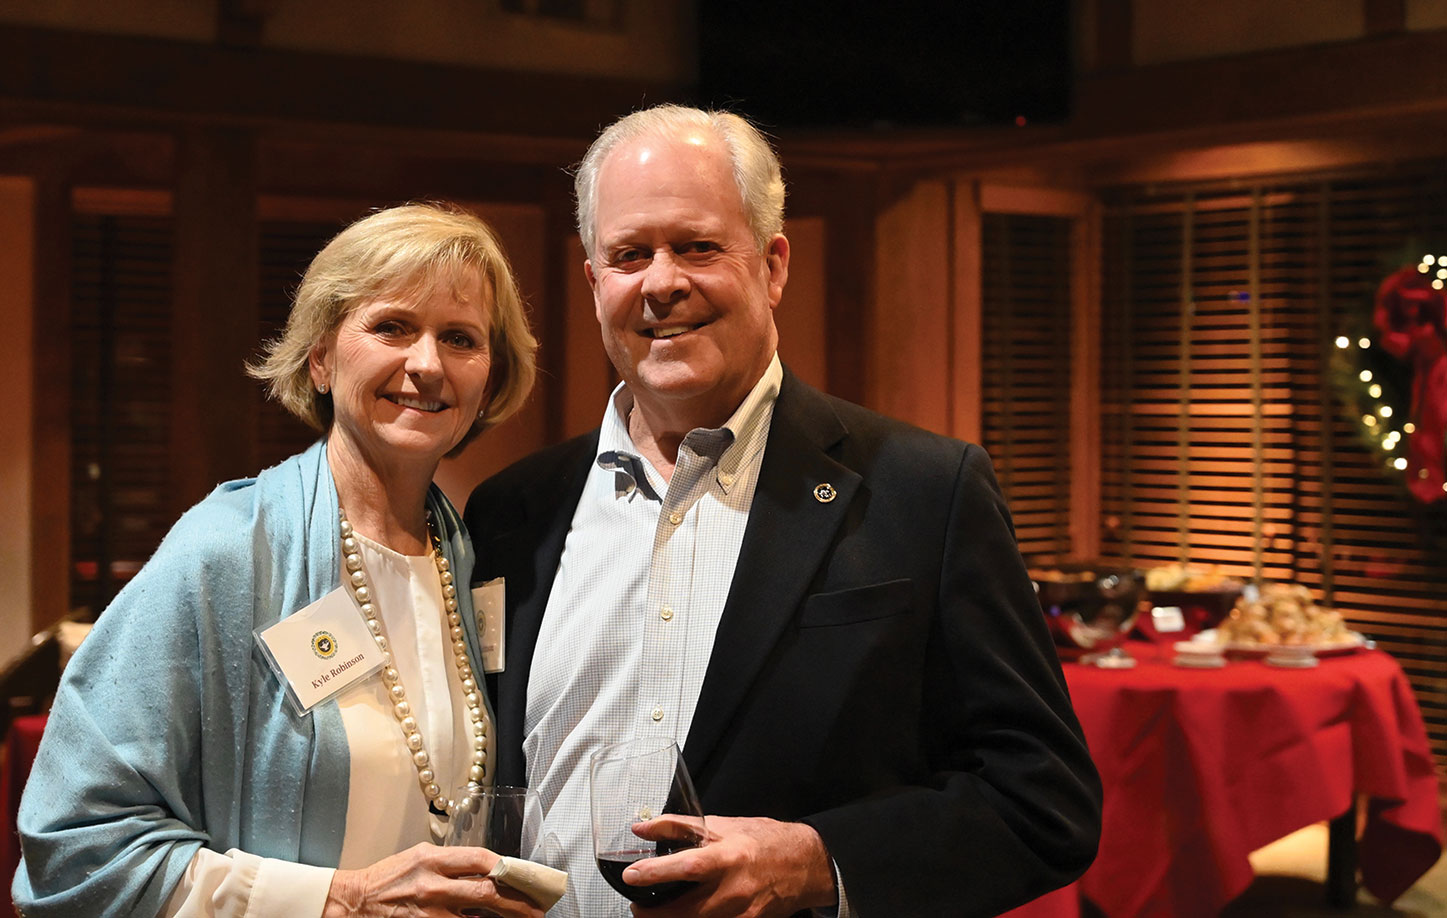 Foundation Vice Chair John Robinson and wife Kyle. John was the lead sponsor for the reception.